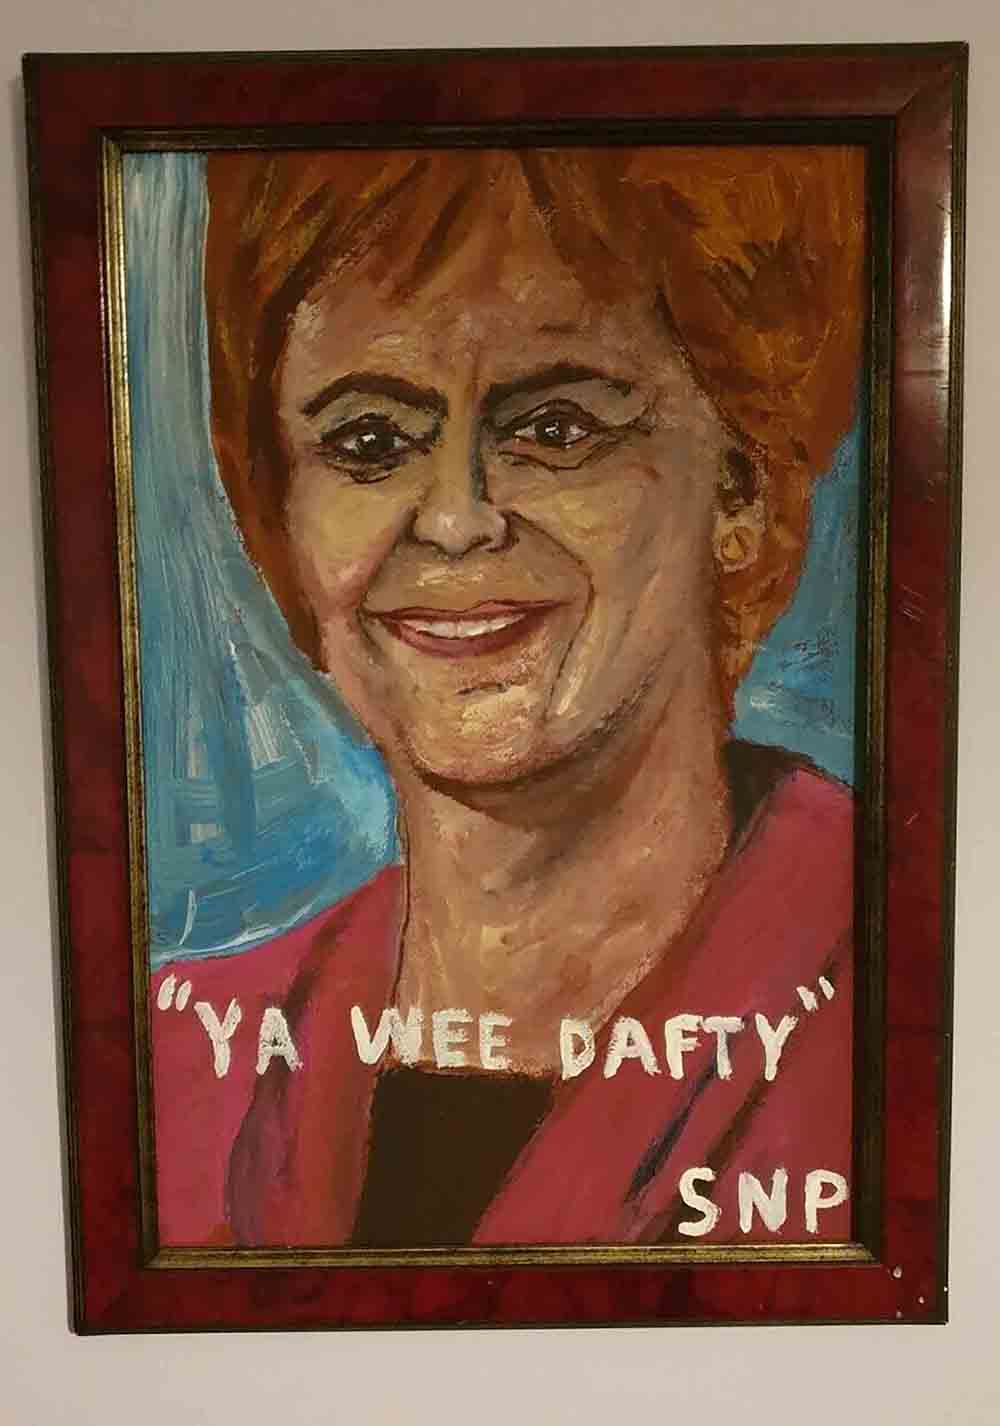 AN EBAY seller has been ridiculed on Twitter after attempting to sell a portrait of Nicole Sturgeon - Scottish News